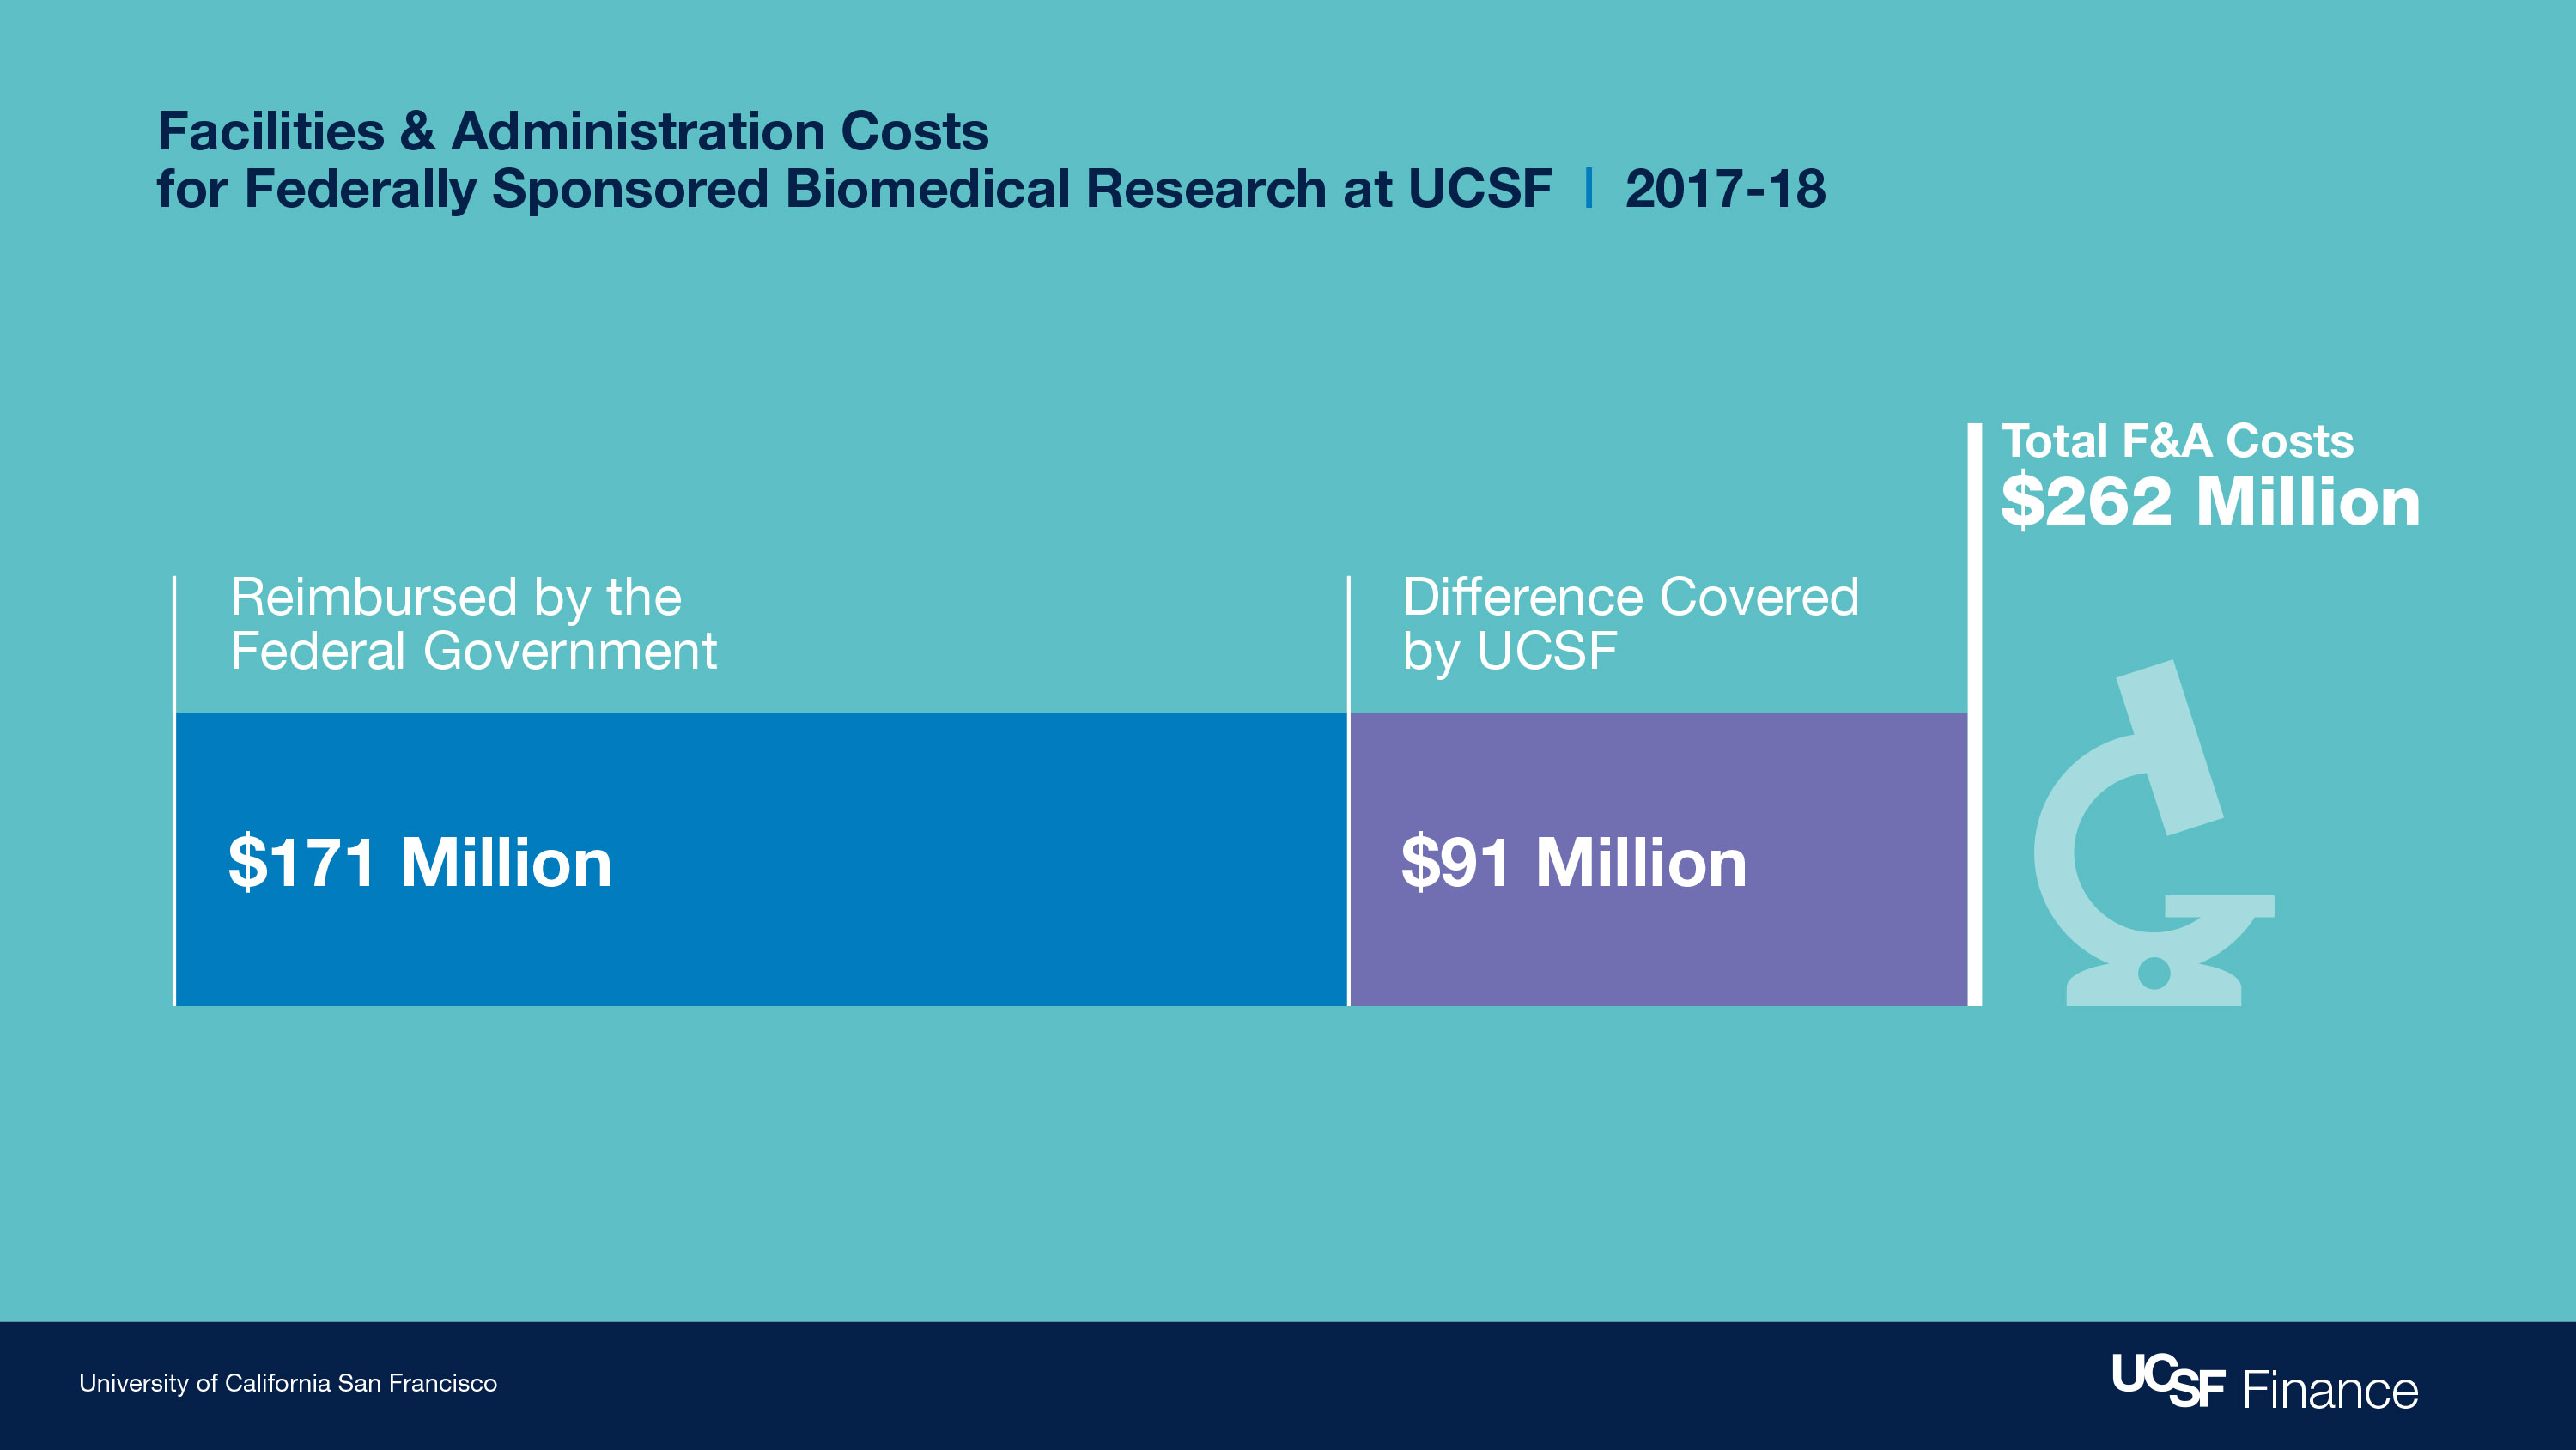 Federal & Administration costs for federally sponsored biomedical research at UCSF during 2017-2018. TOtal cost was $262 Million.